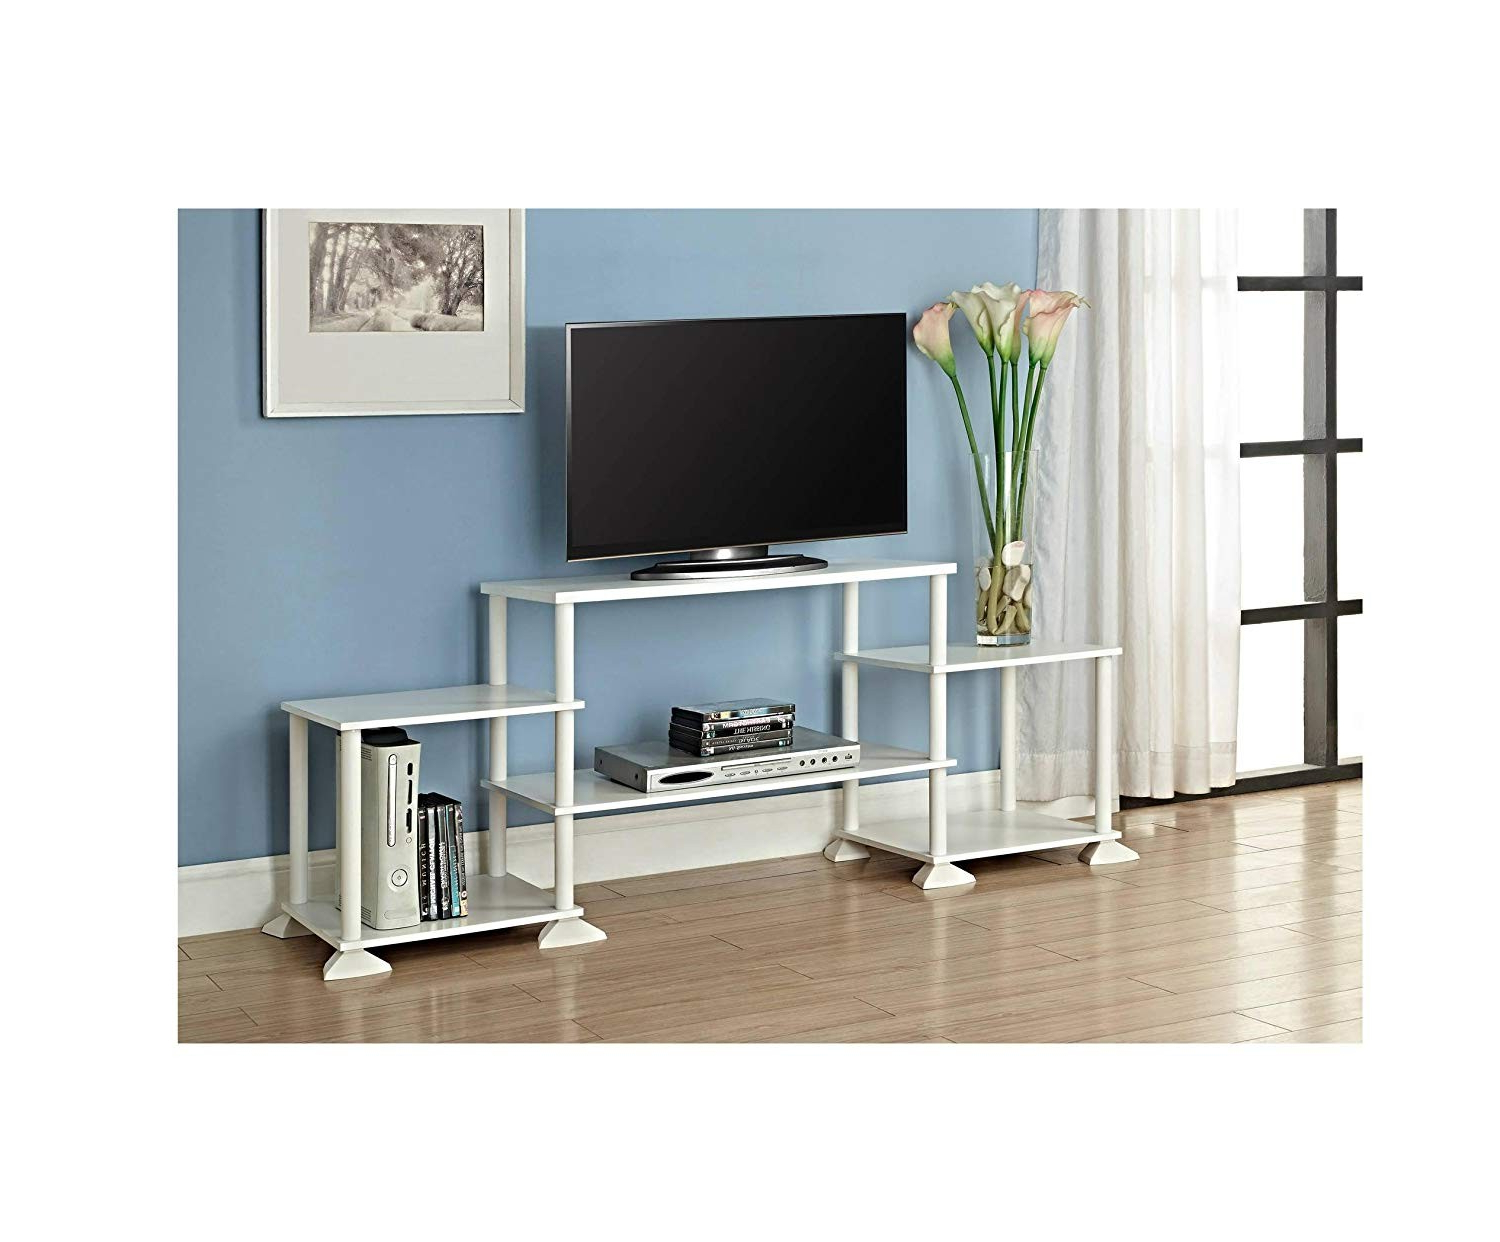 Ovid White Tv Stand Within Best And Newest Walmart White Tv Stands – Orderflovent (View 13 of 20)